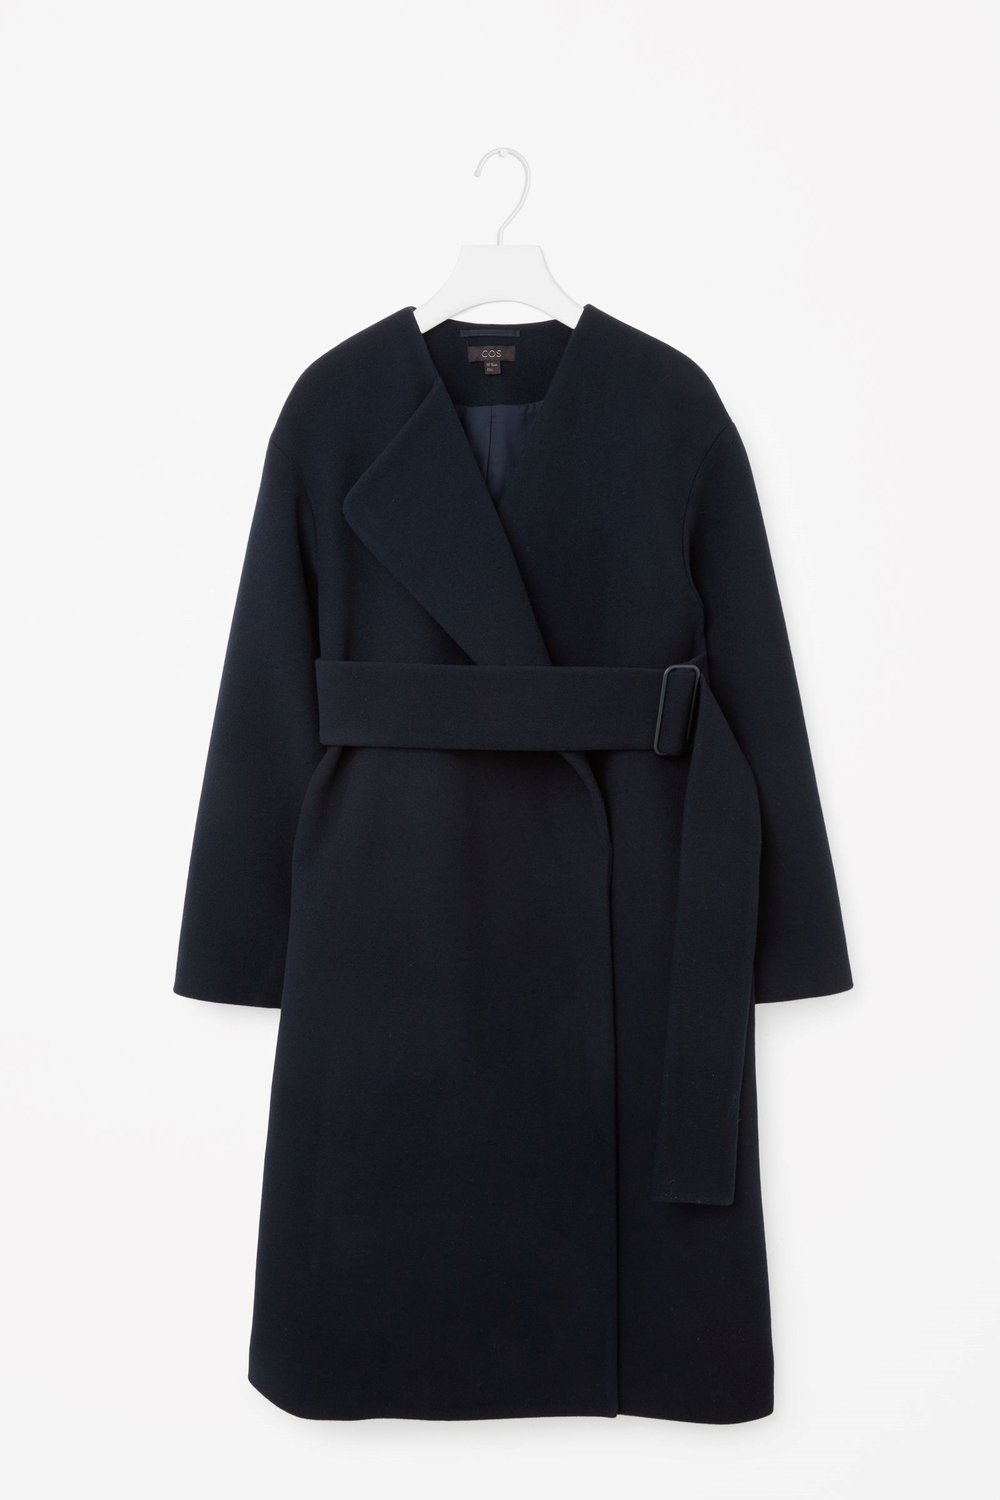 COS Coat with oversized belt $360